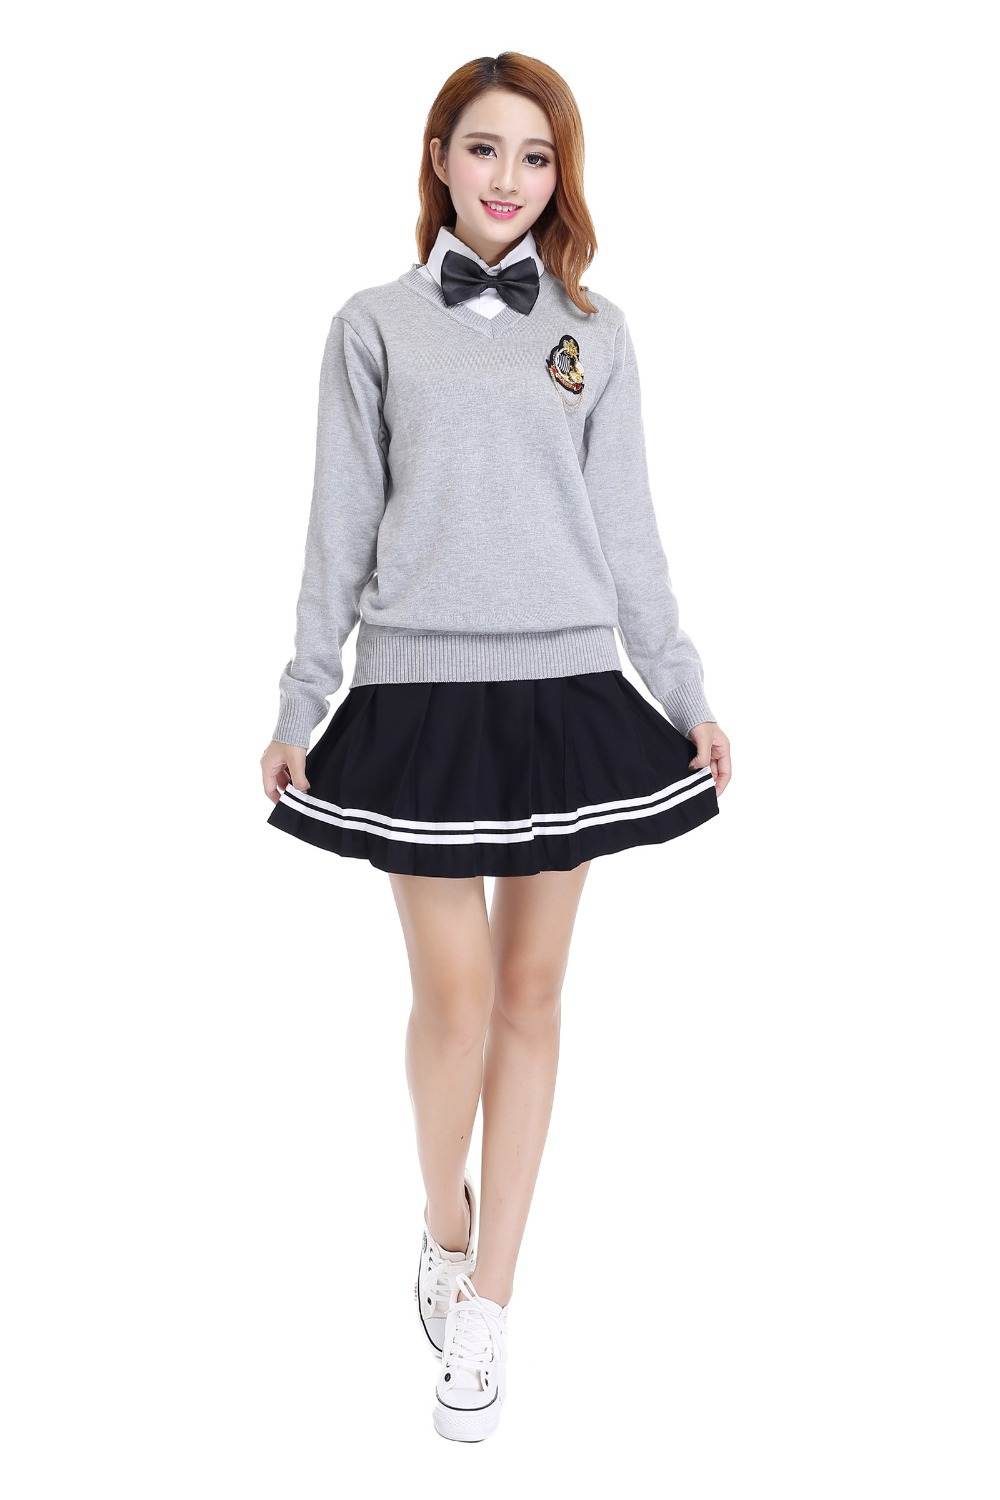 Uniformi scolastiche invernali autunnali uniformi per studentesse Sweety Girl-7058